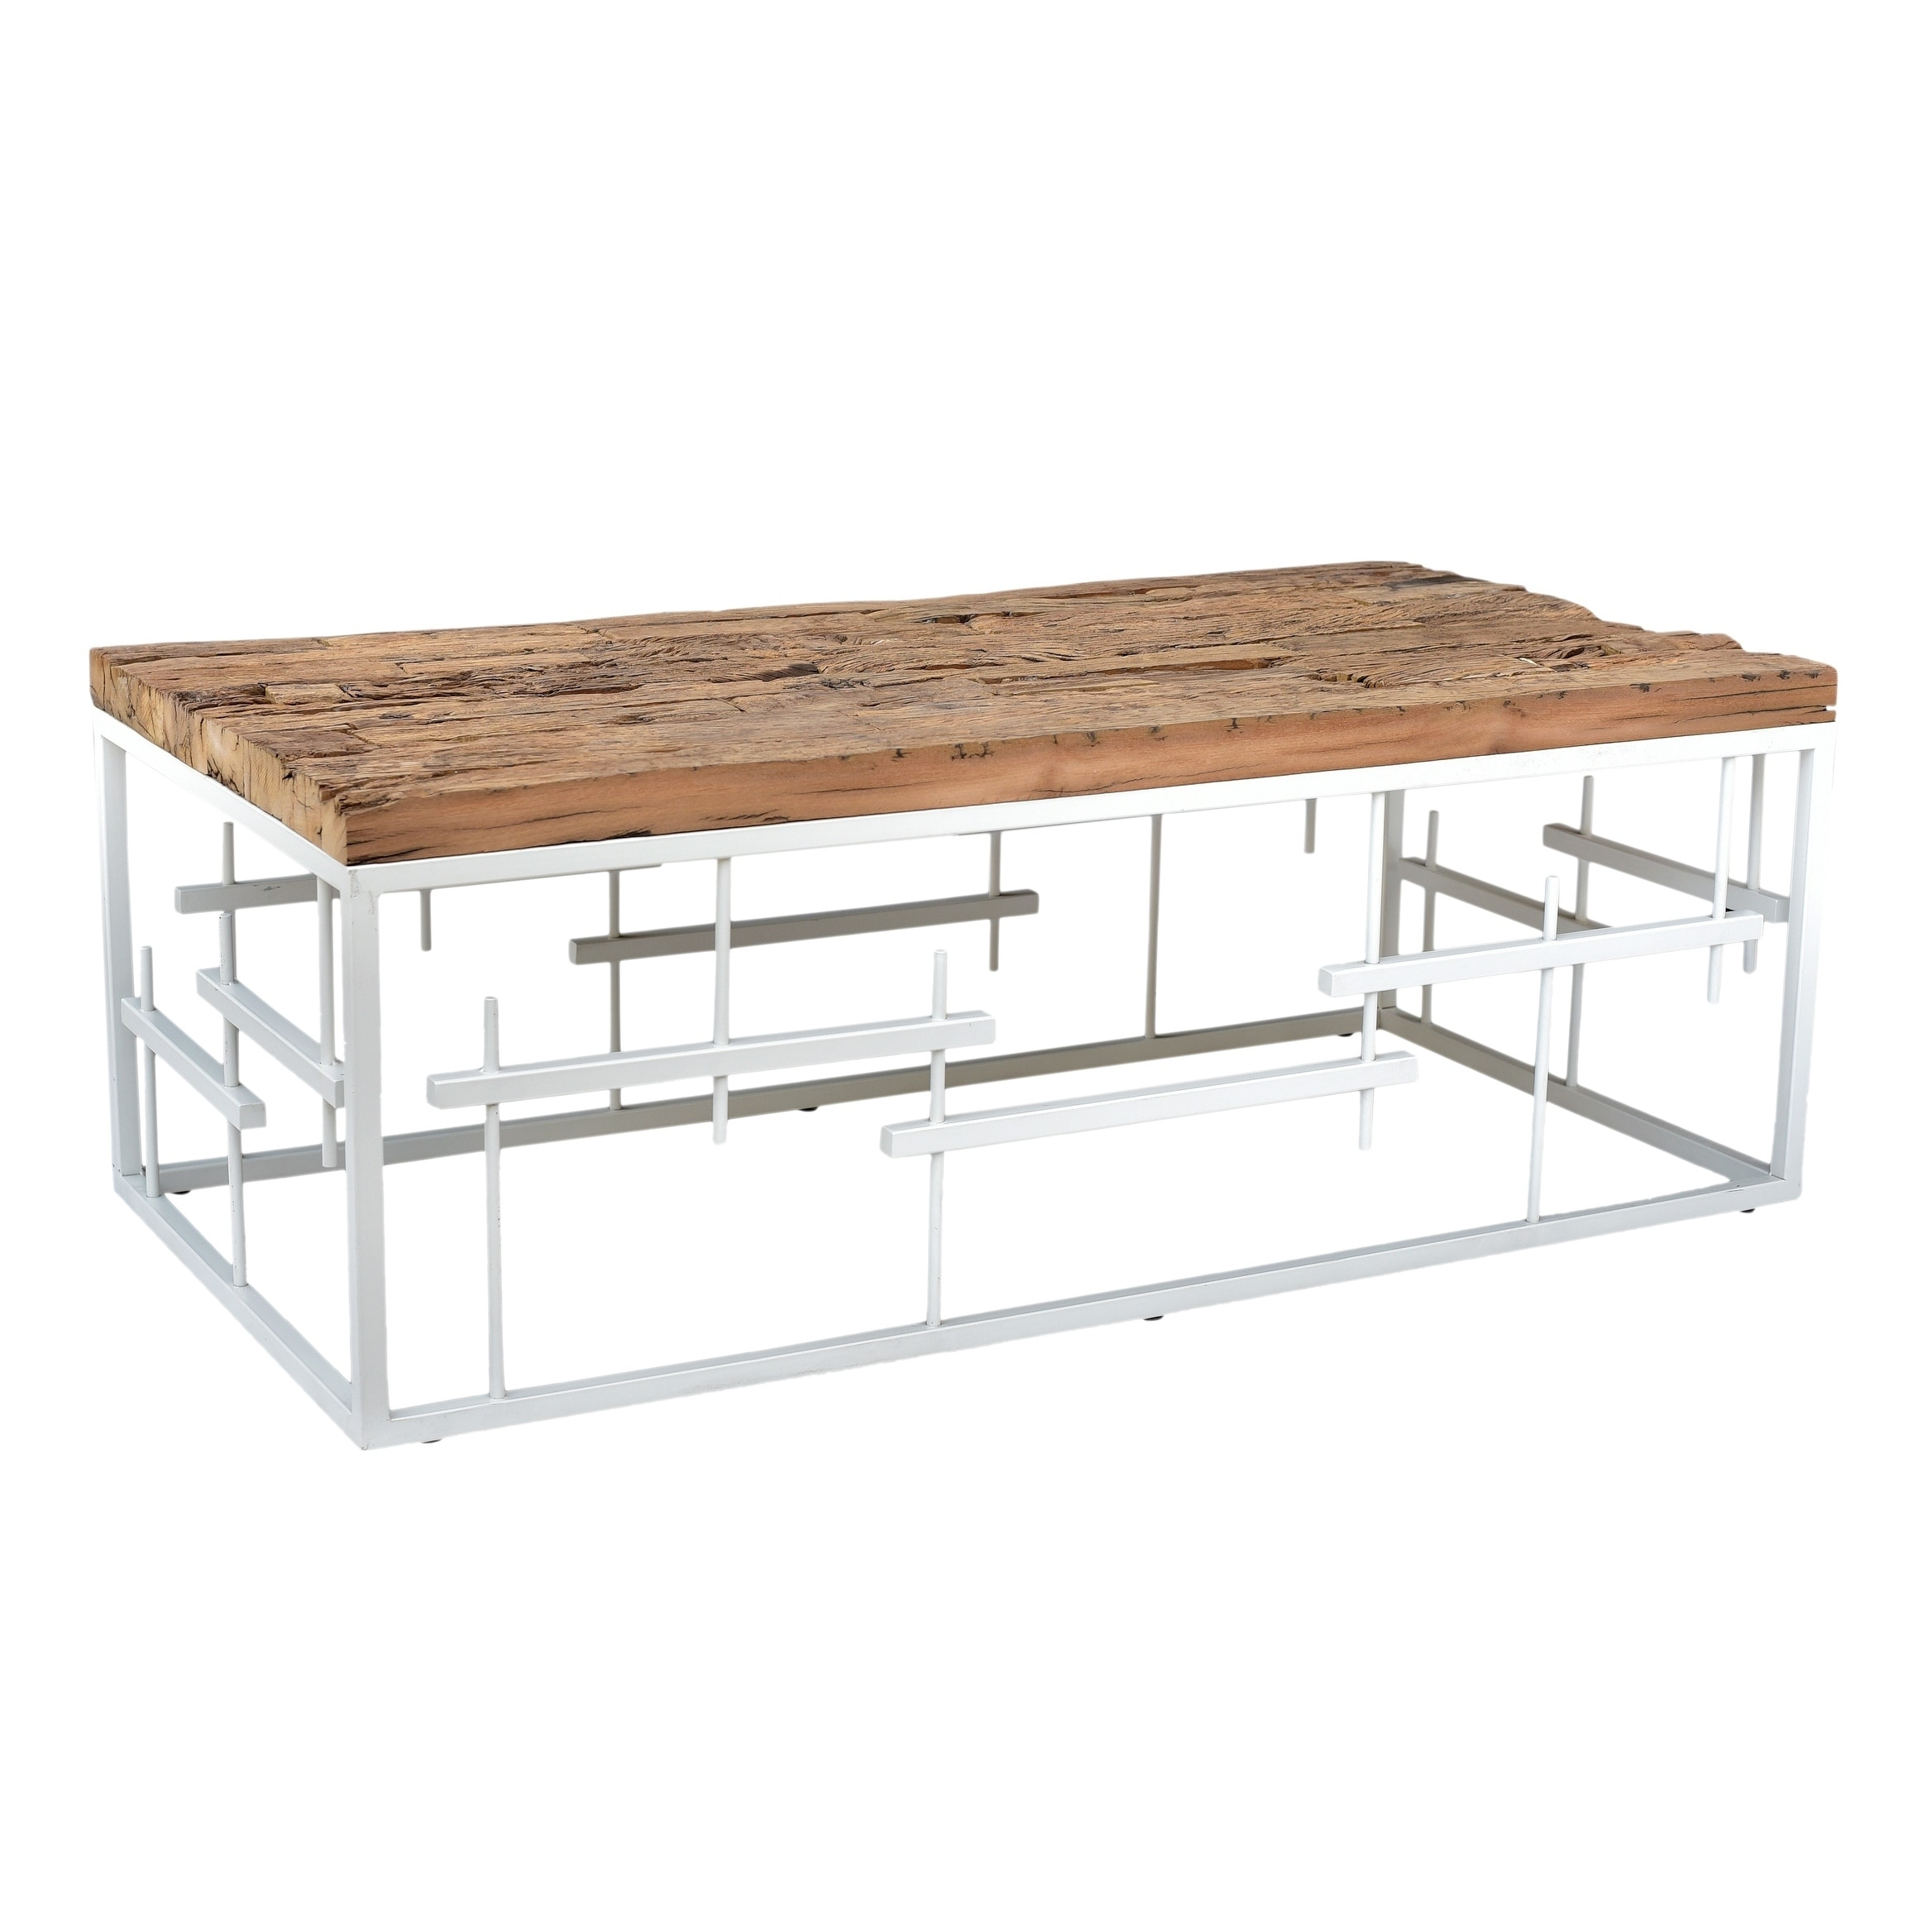 Shop aurelle home rustic modern white solid wood coffee table on sale free shipping today overstock com 18756430